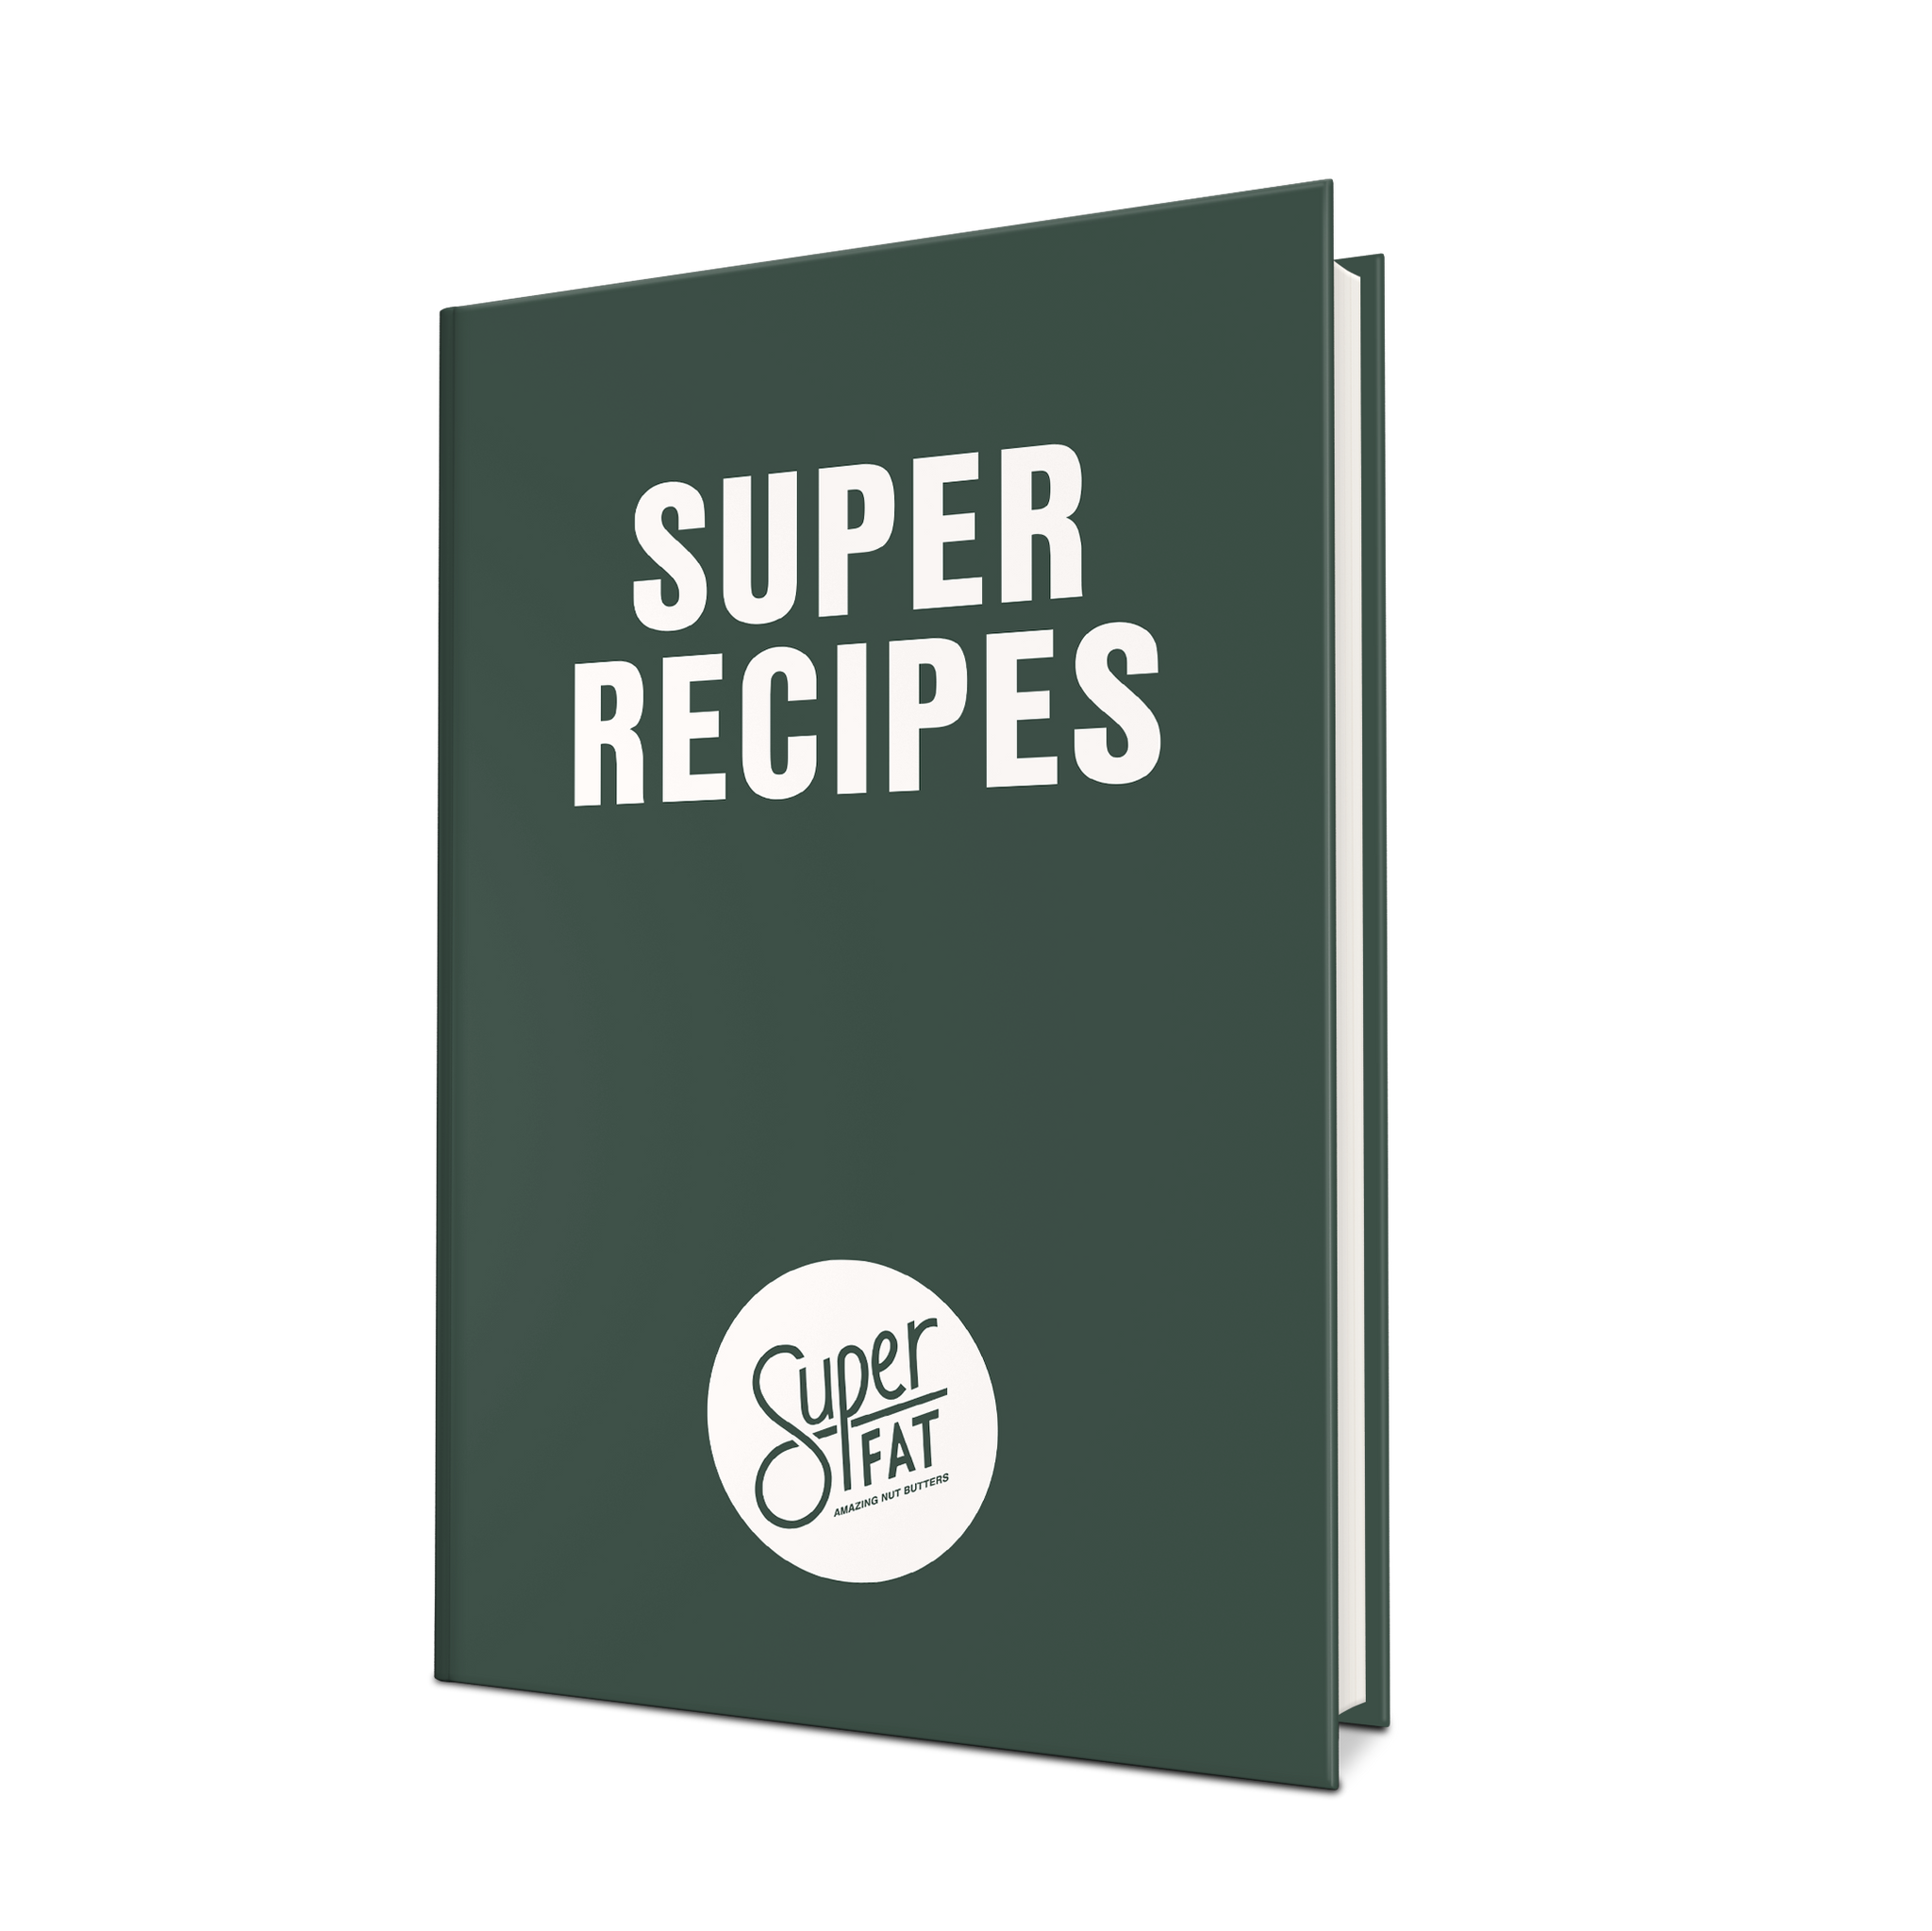 SuperFat Super Recipes Cookbook - 40+ Keto, Vegan, Gluten Free Recipes